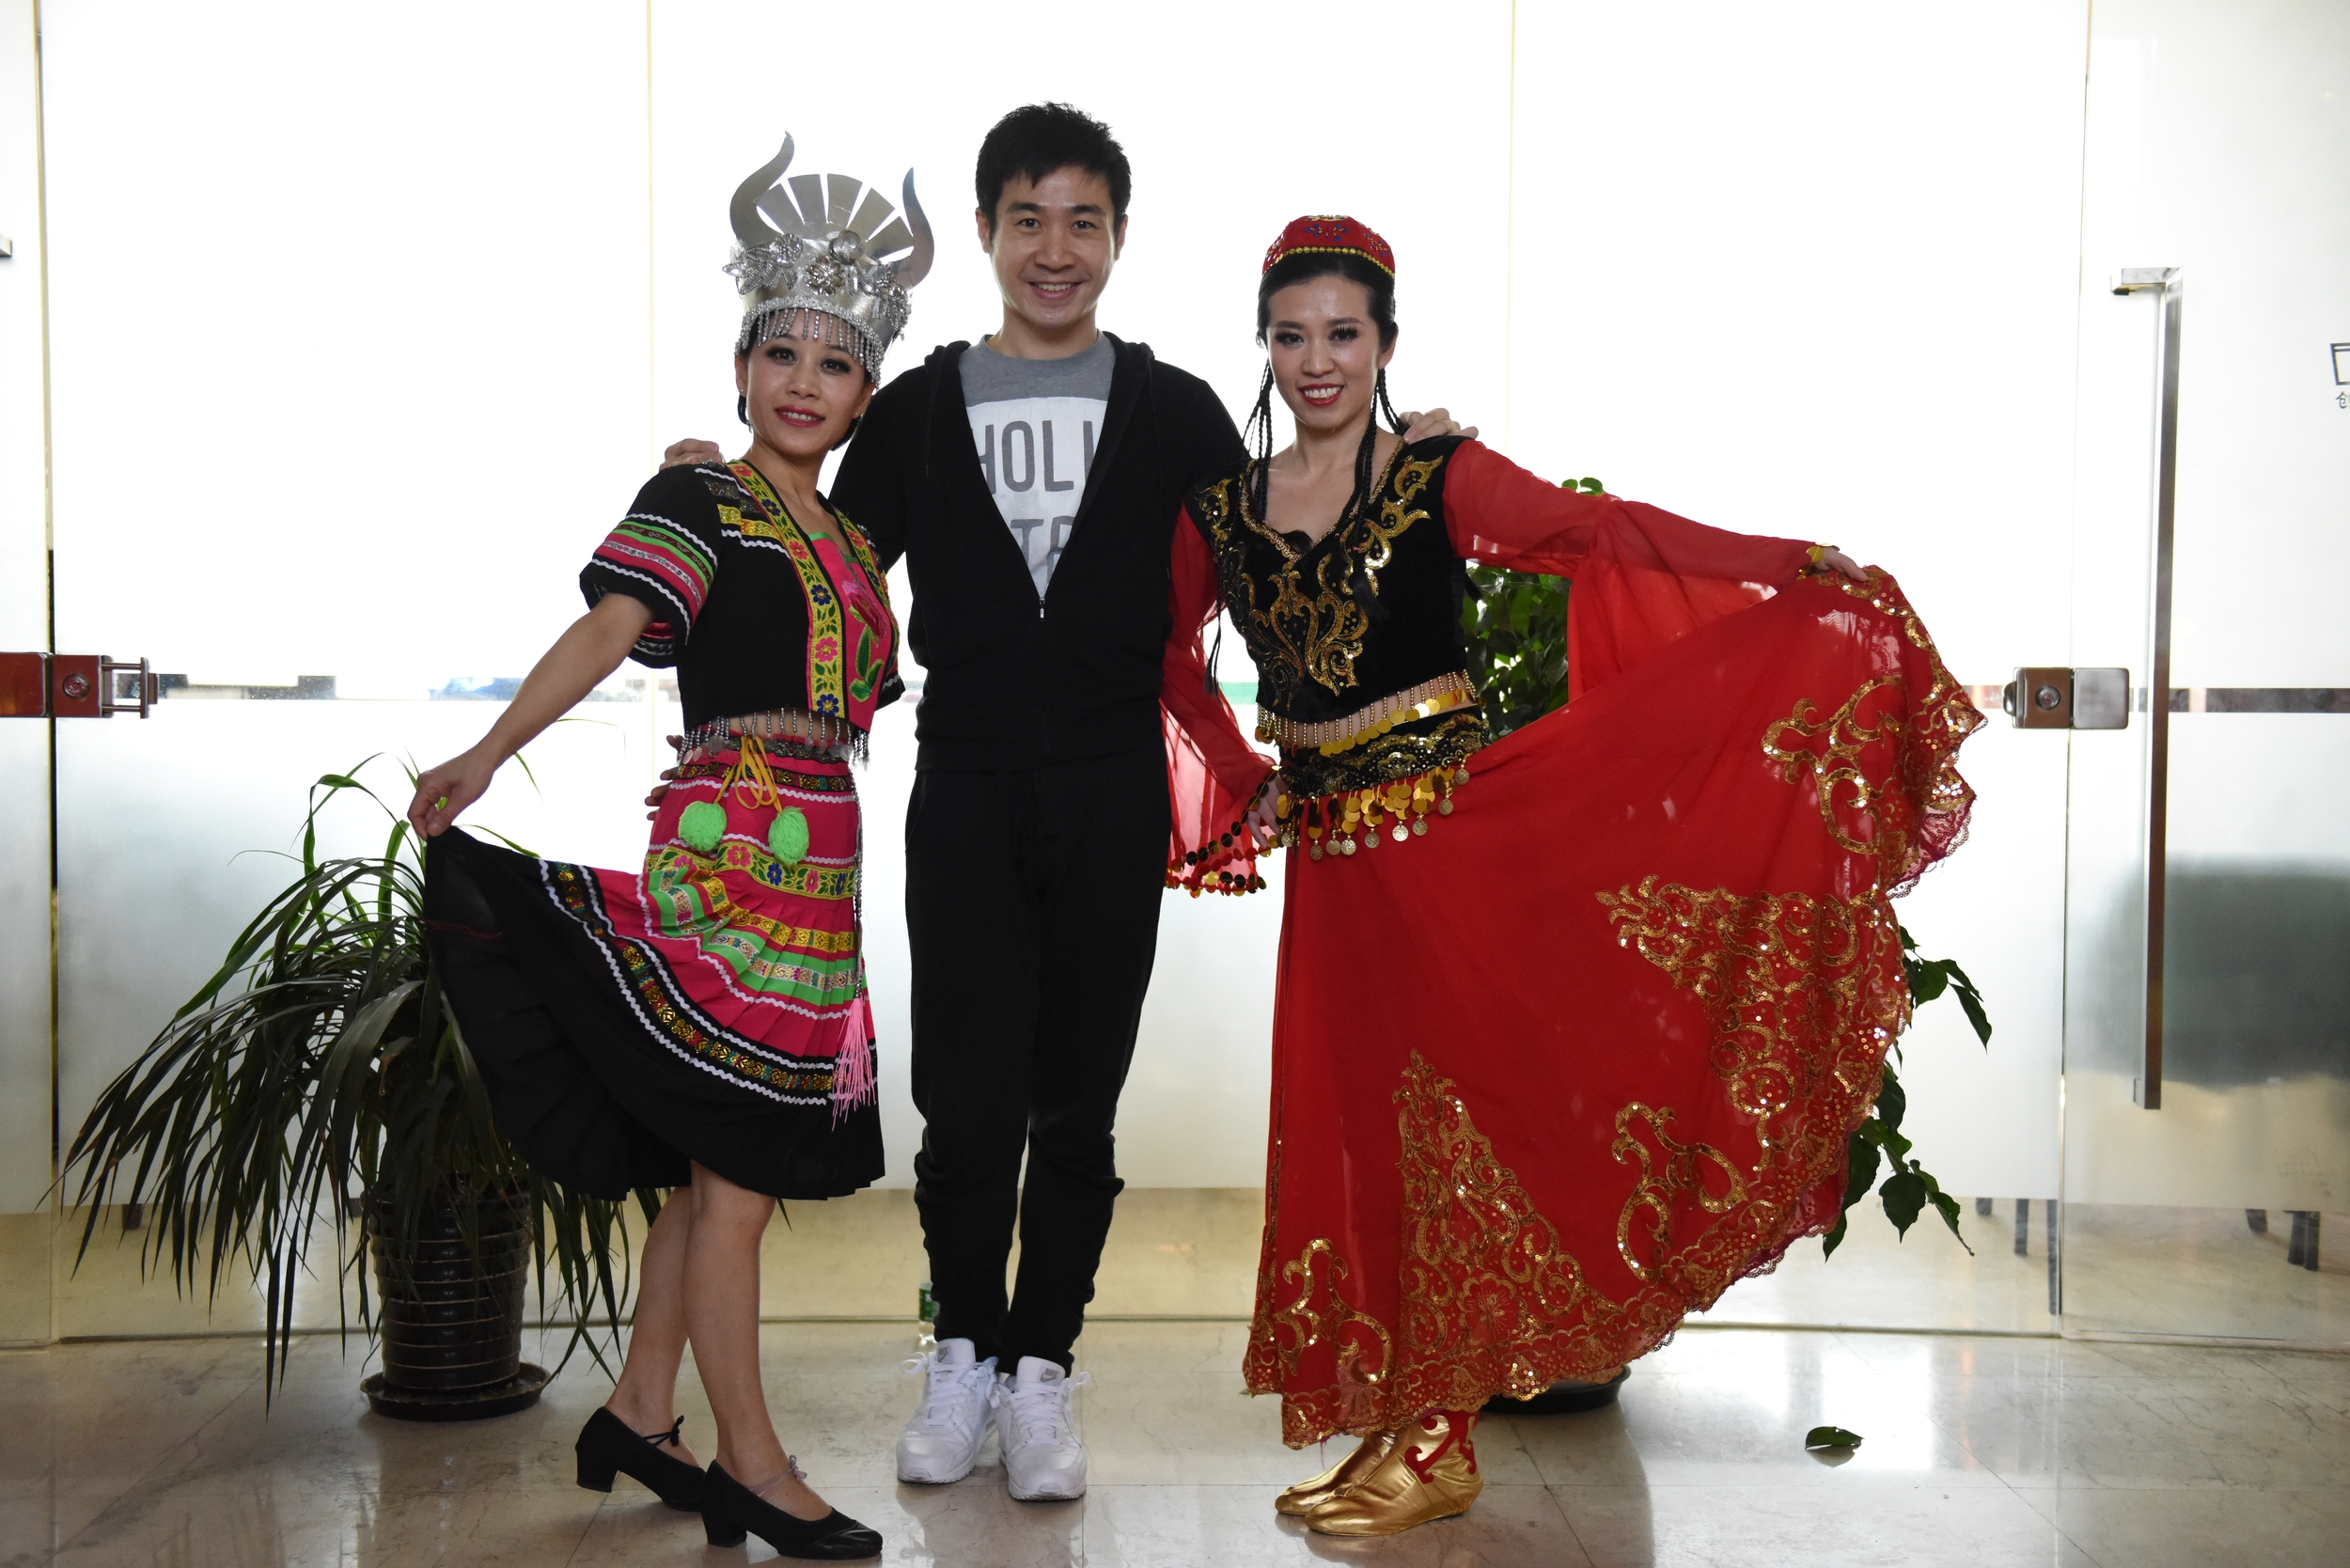 Jane Zhang  joined a dancing club, and recently, at a year-end gala party launched by the publishing company, she presents as a girl of Miao ethnic group. In the picture is Jane, her teammate and their dancing teacher.